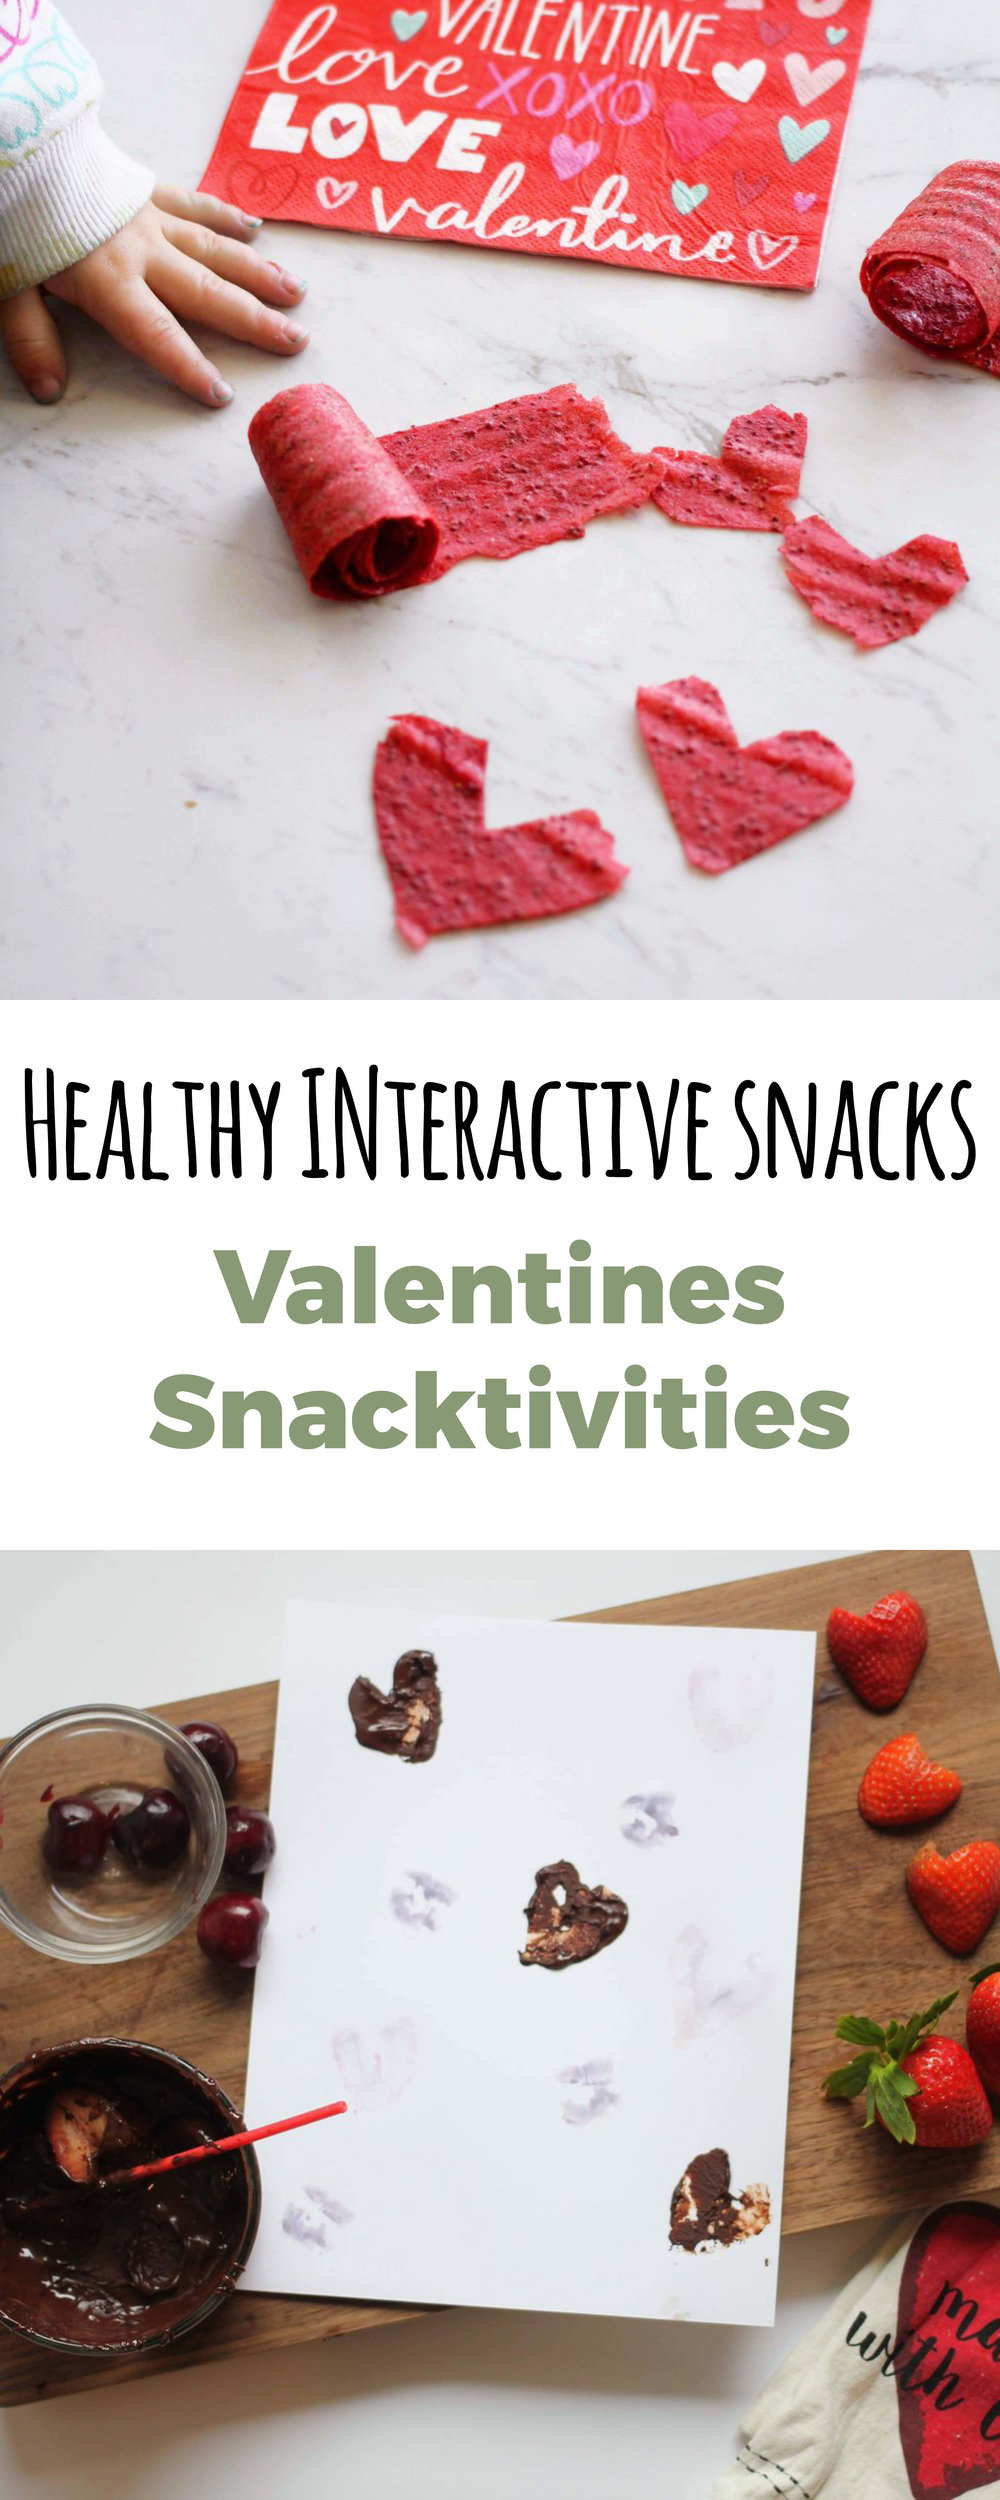 Fun Valentines snacks that your kids can play with and eat. These healthy snacks look like a super, fun ways to celebrate.